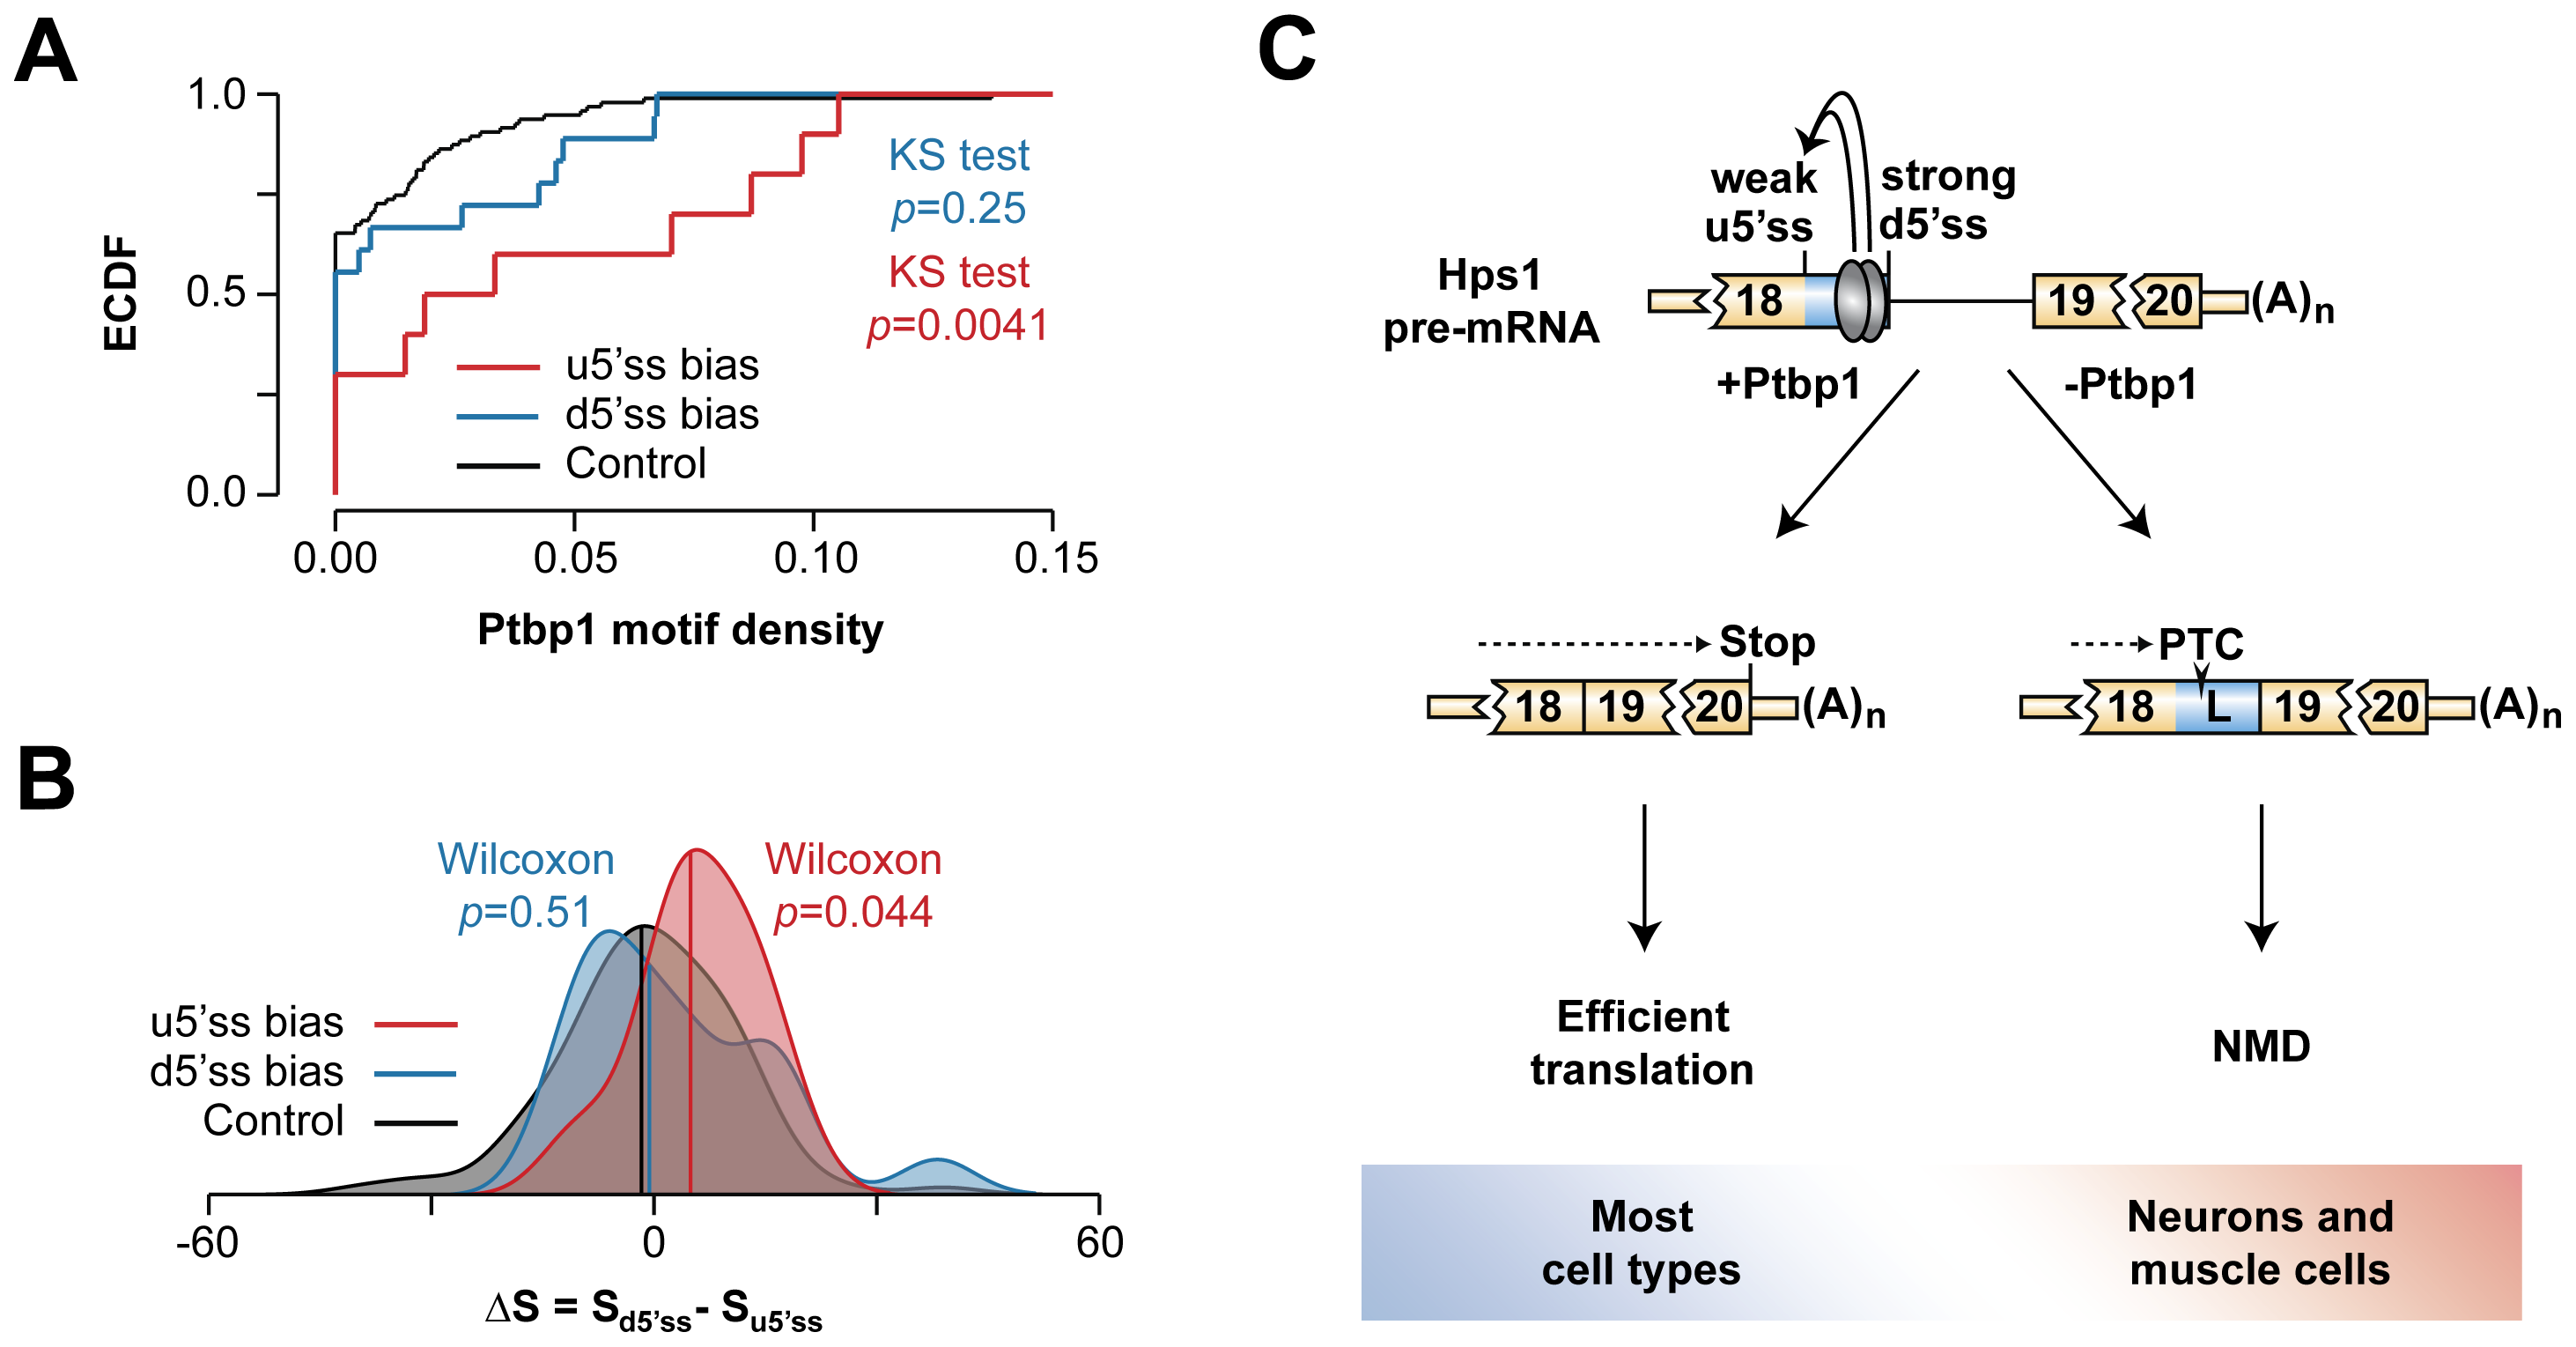 Hps1-like A5C regulation may recur in other genes.